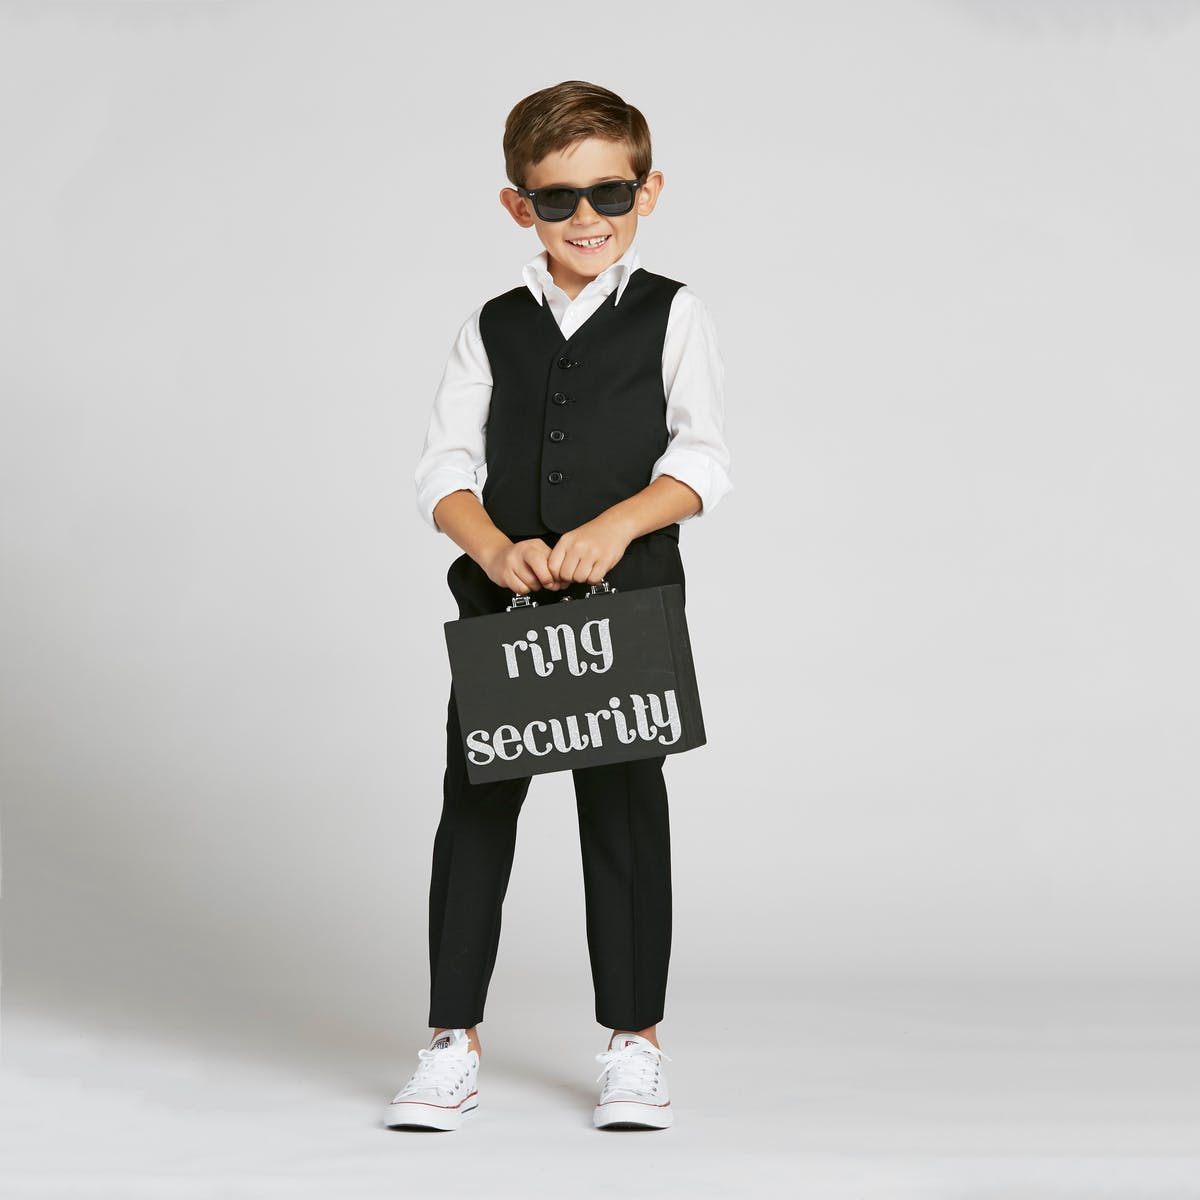 Cheep suits for ring bearers. The Groomsman Suit sells the best kids suits.